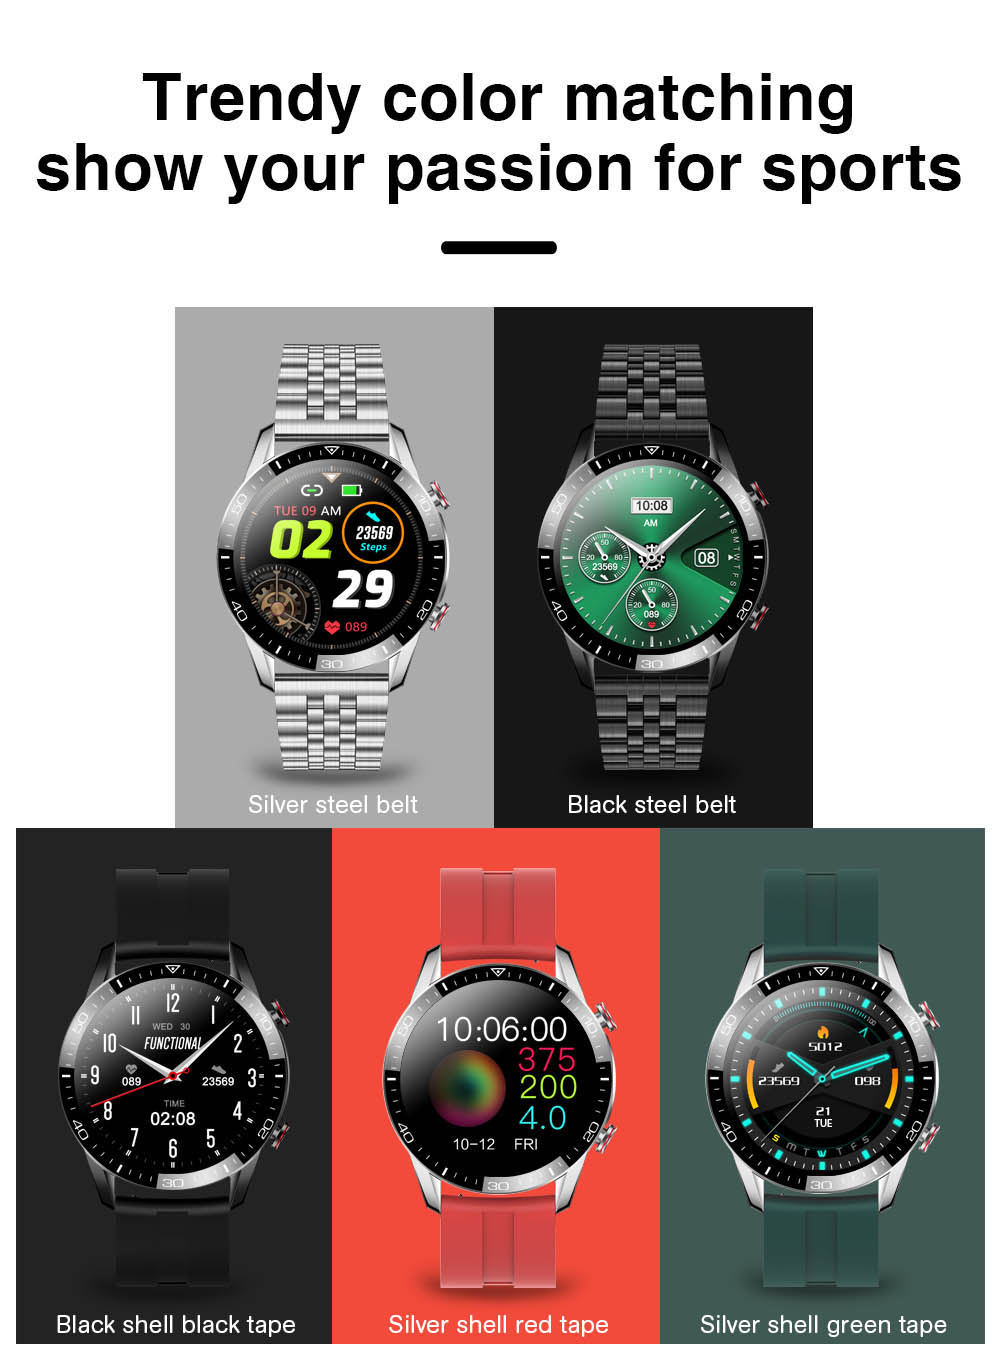 Hbbd9d46de5d048db8d5b813756b33903J TK2-8 Smart Watch For Men Bluetooth Call IP68 Waterproof Blood Pressure Heart Rate Monitor New SmartWatch Sports Fitness Tracker